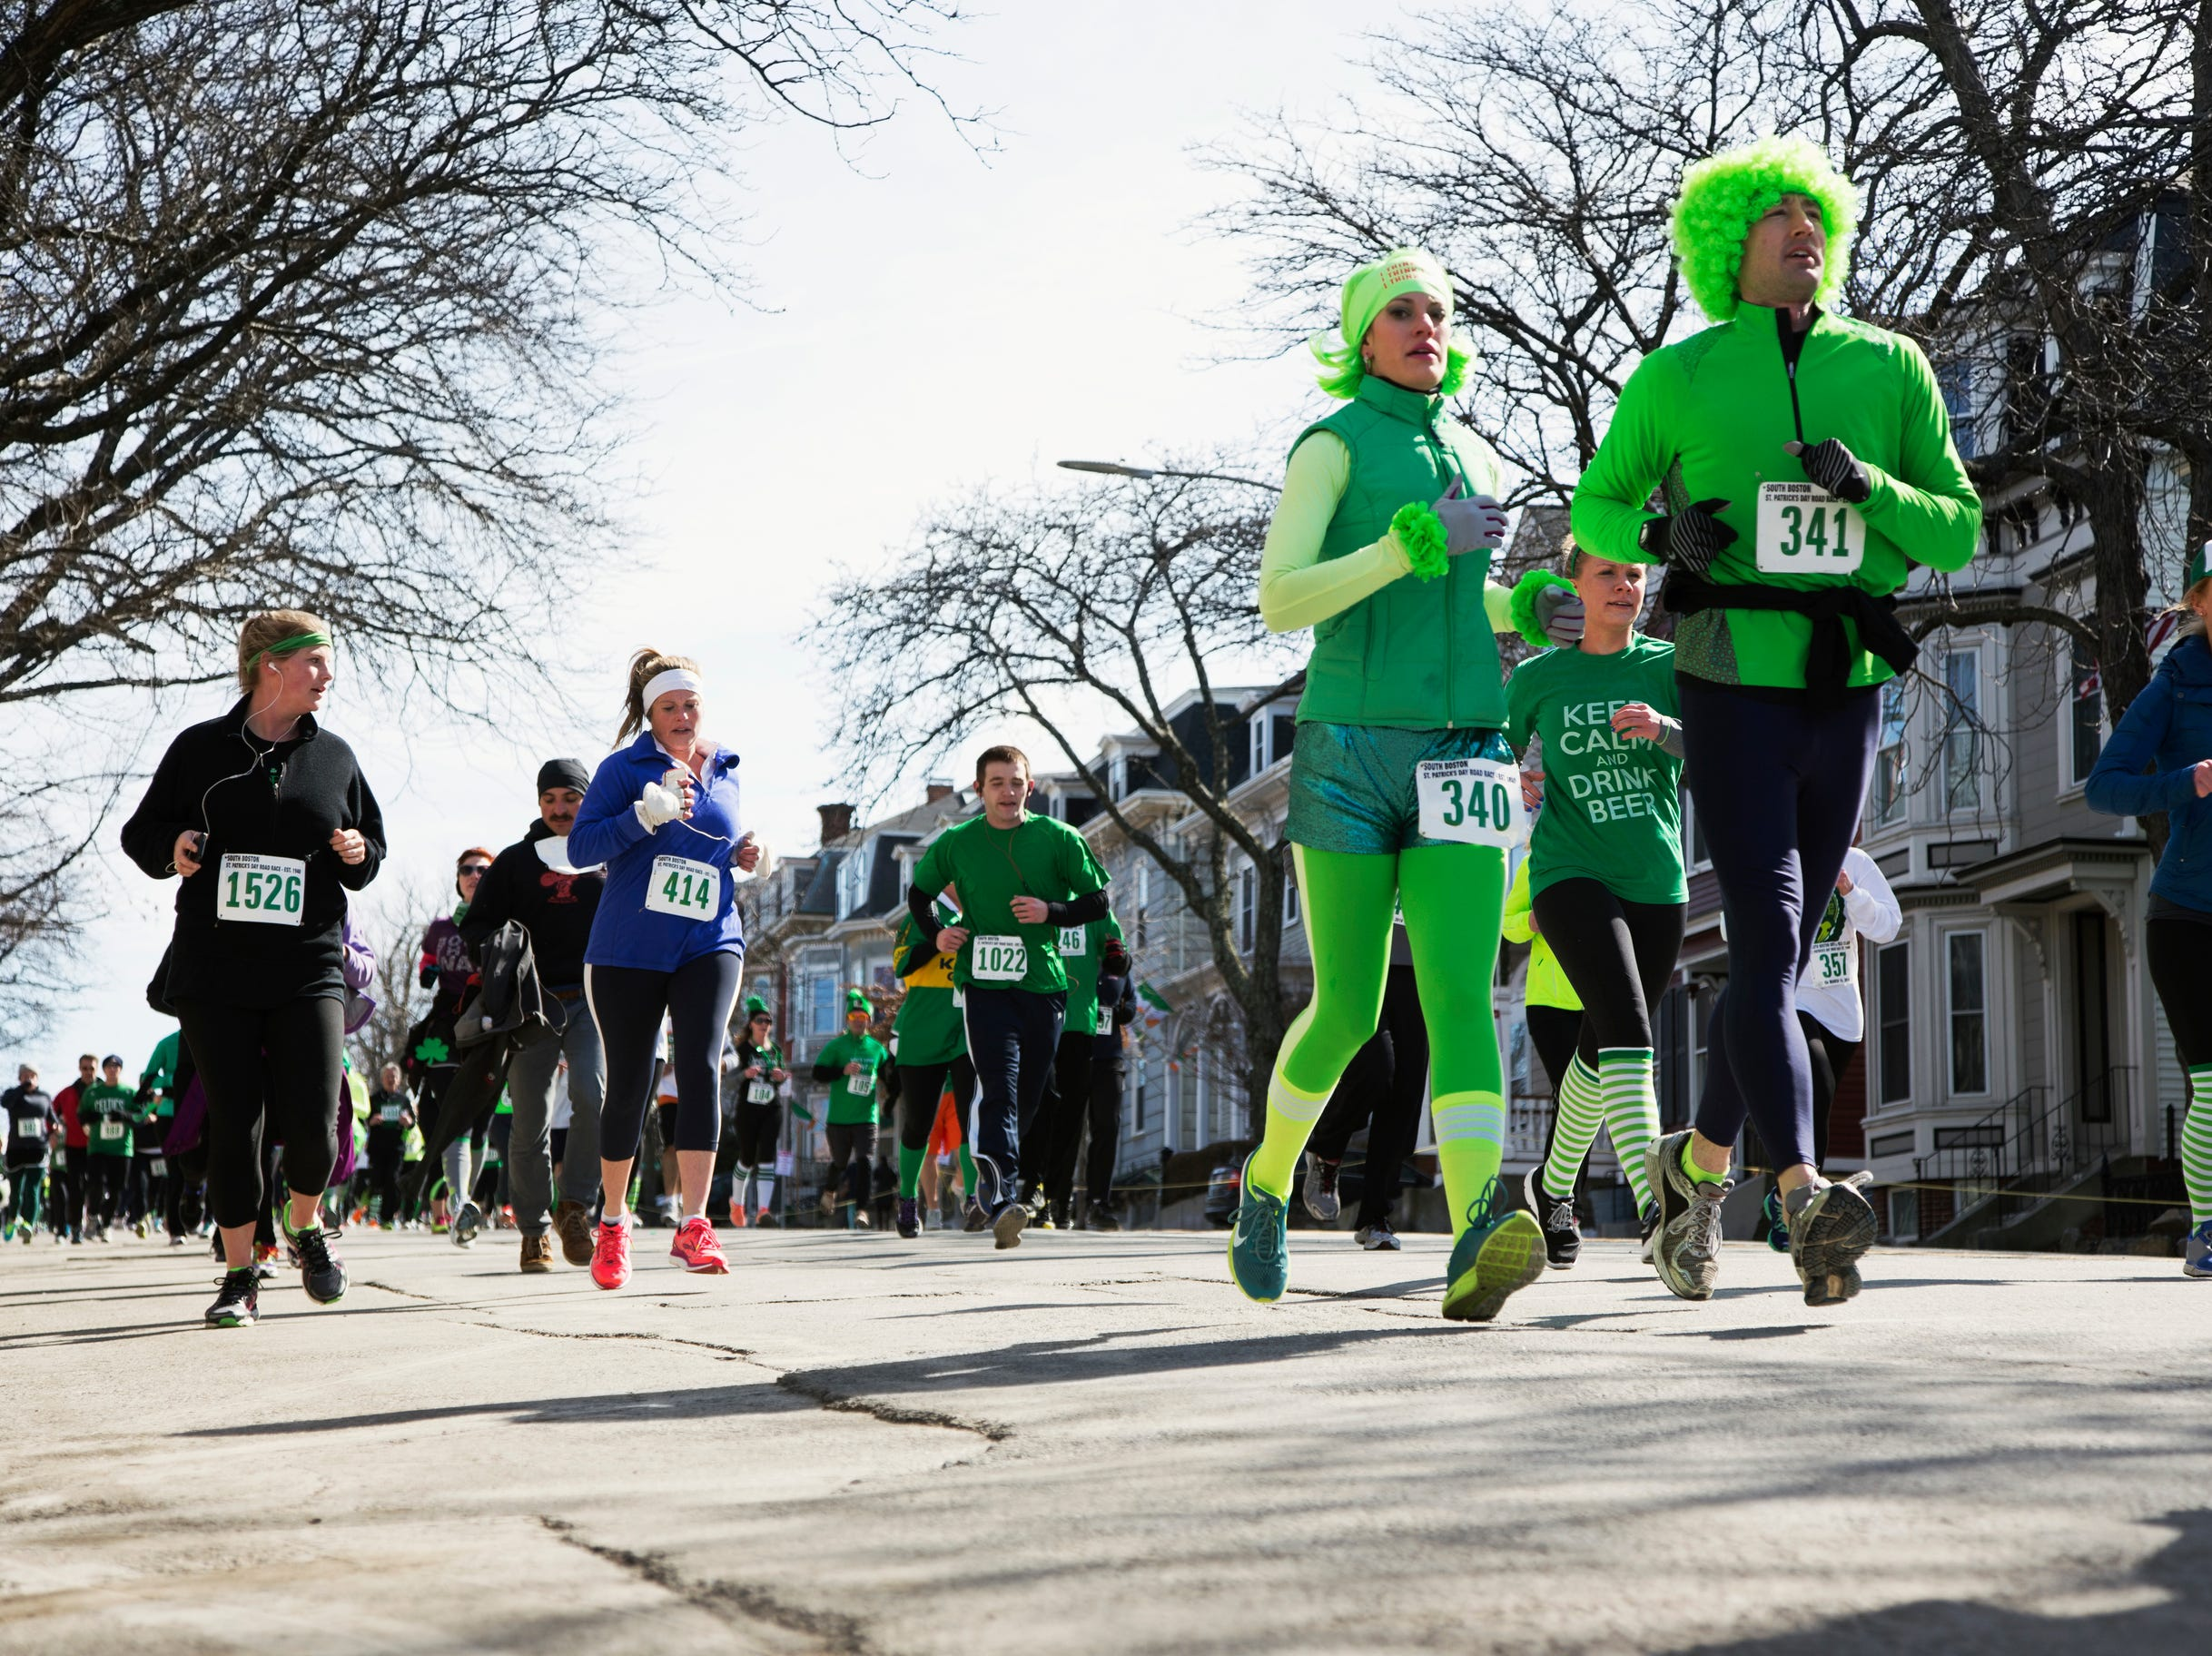 Joggers South Boston St Patrick S Day Road Race South Boston Massachusetts Usa 03 16 2014